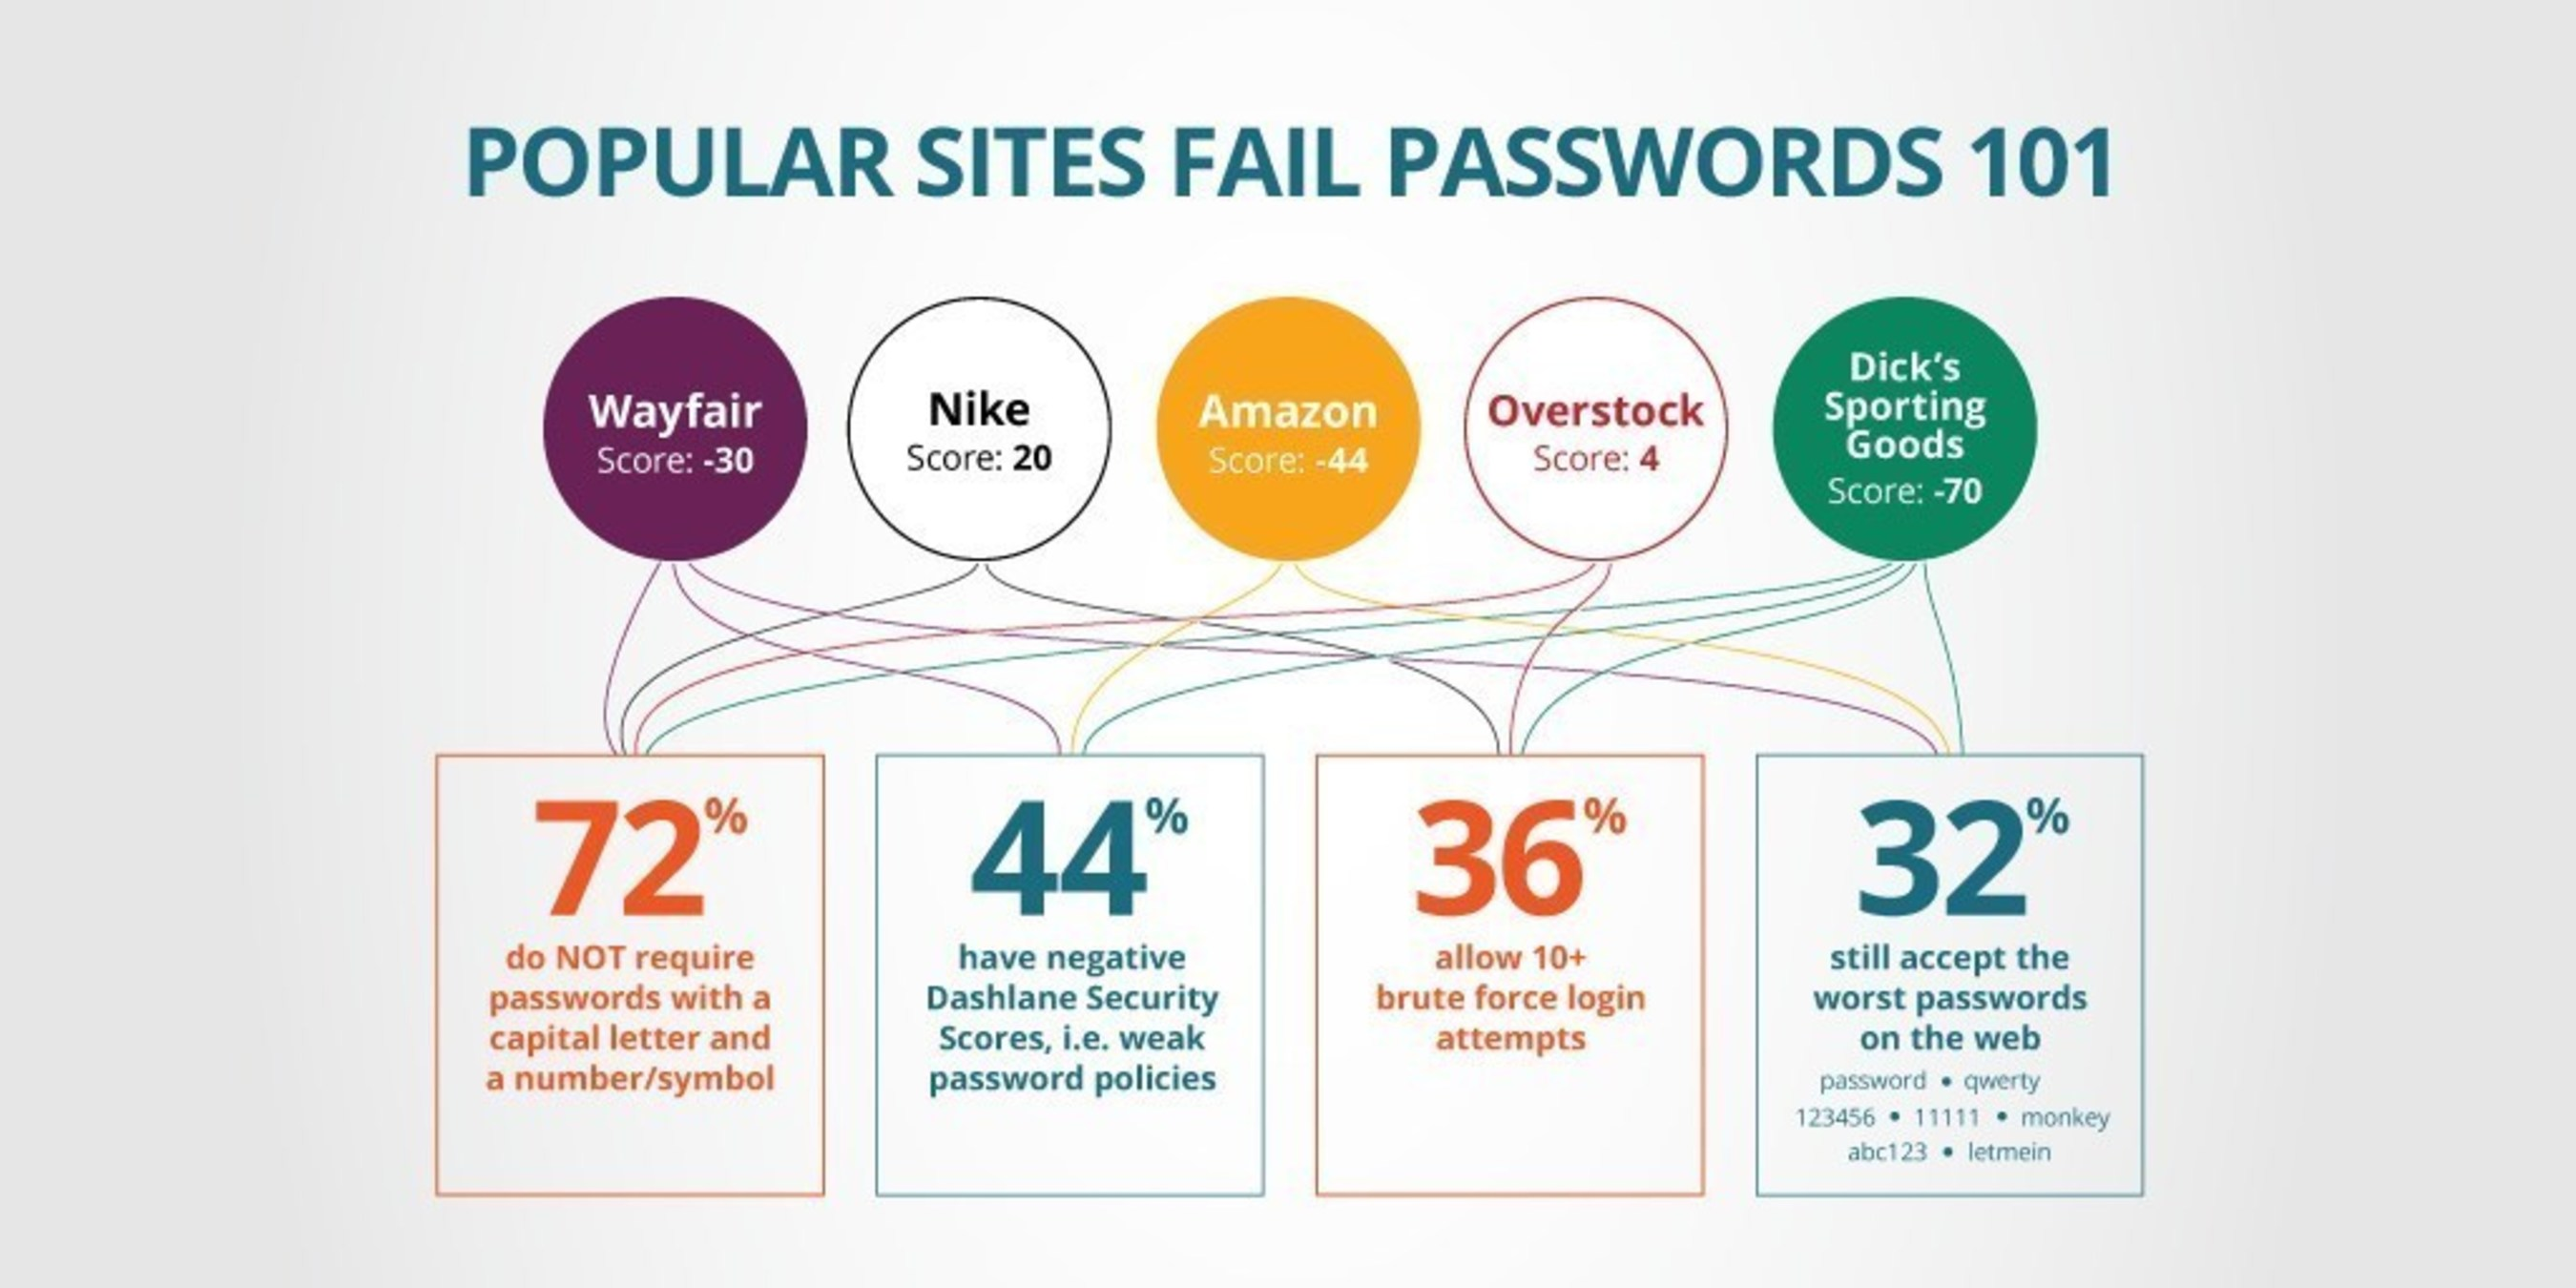 Unsafe Password Policies Leave Holiday Shoppers Vulnerable Online According to Dashlane Security Study